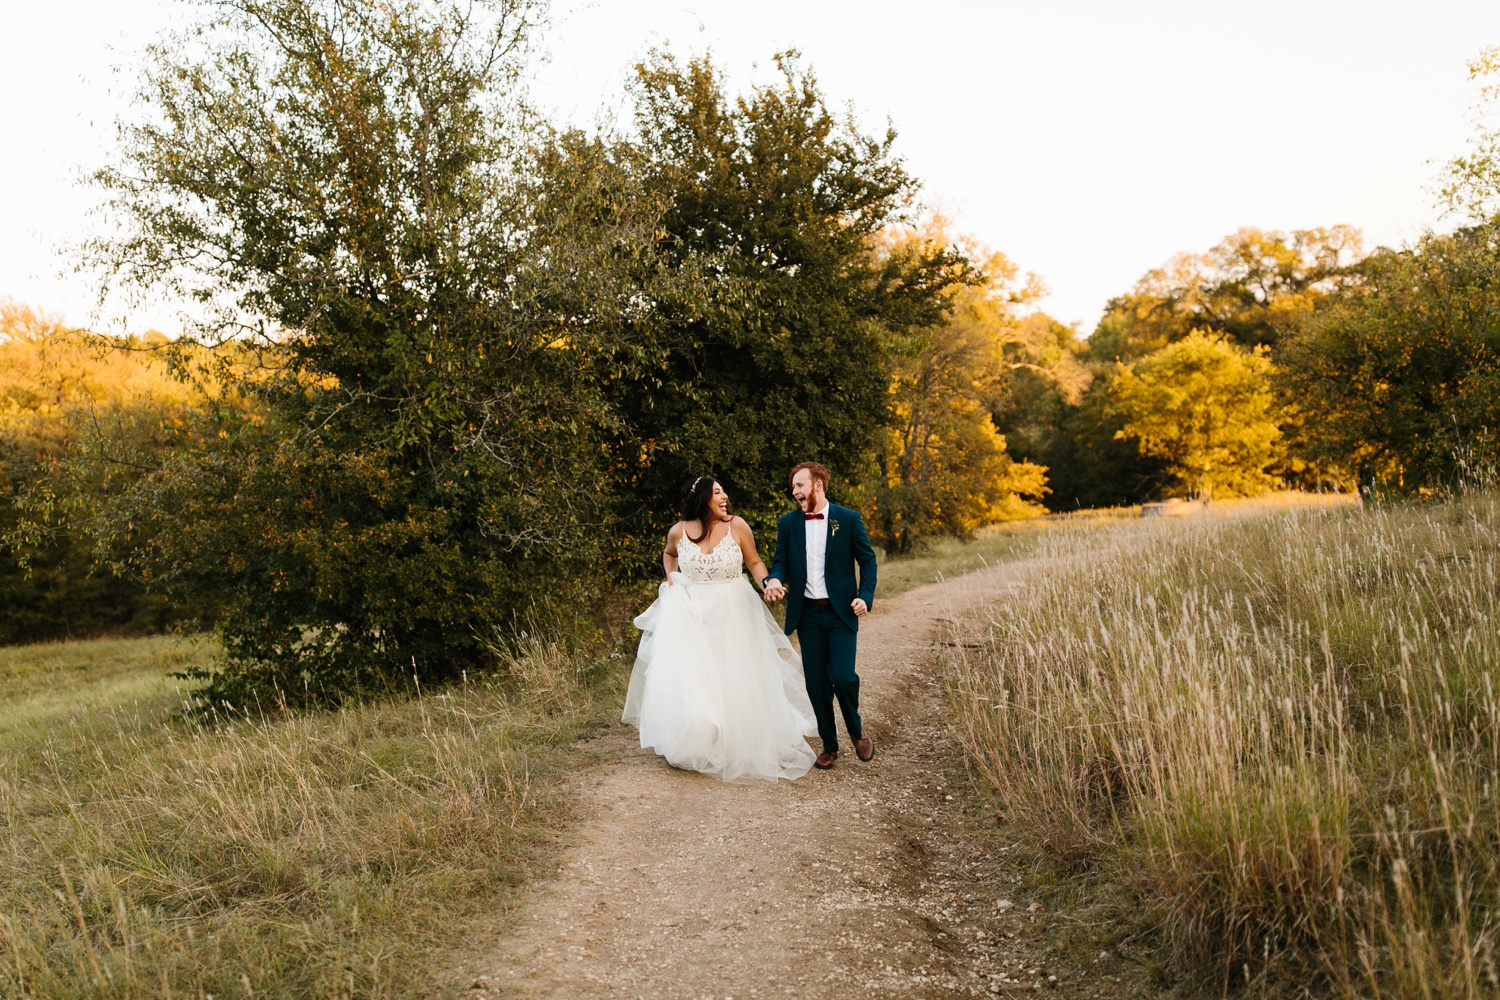 Grant + Lysette | a vibrant, deep burgundy and navy, and mixed metals wedding at Hidden Pines Chapel by North Texas Wedding Photographer Rachel Meagan Photography 247